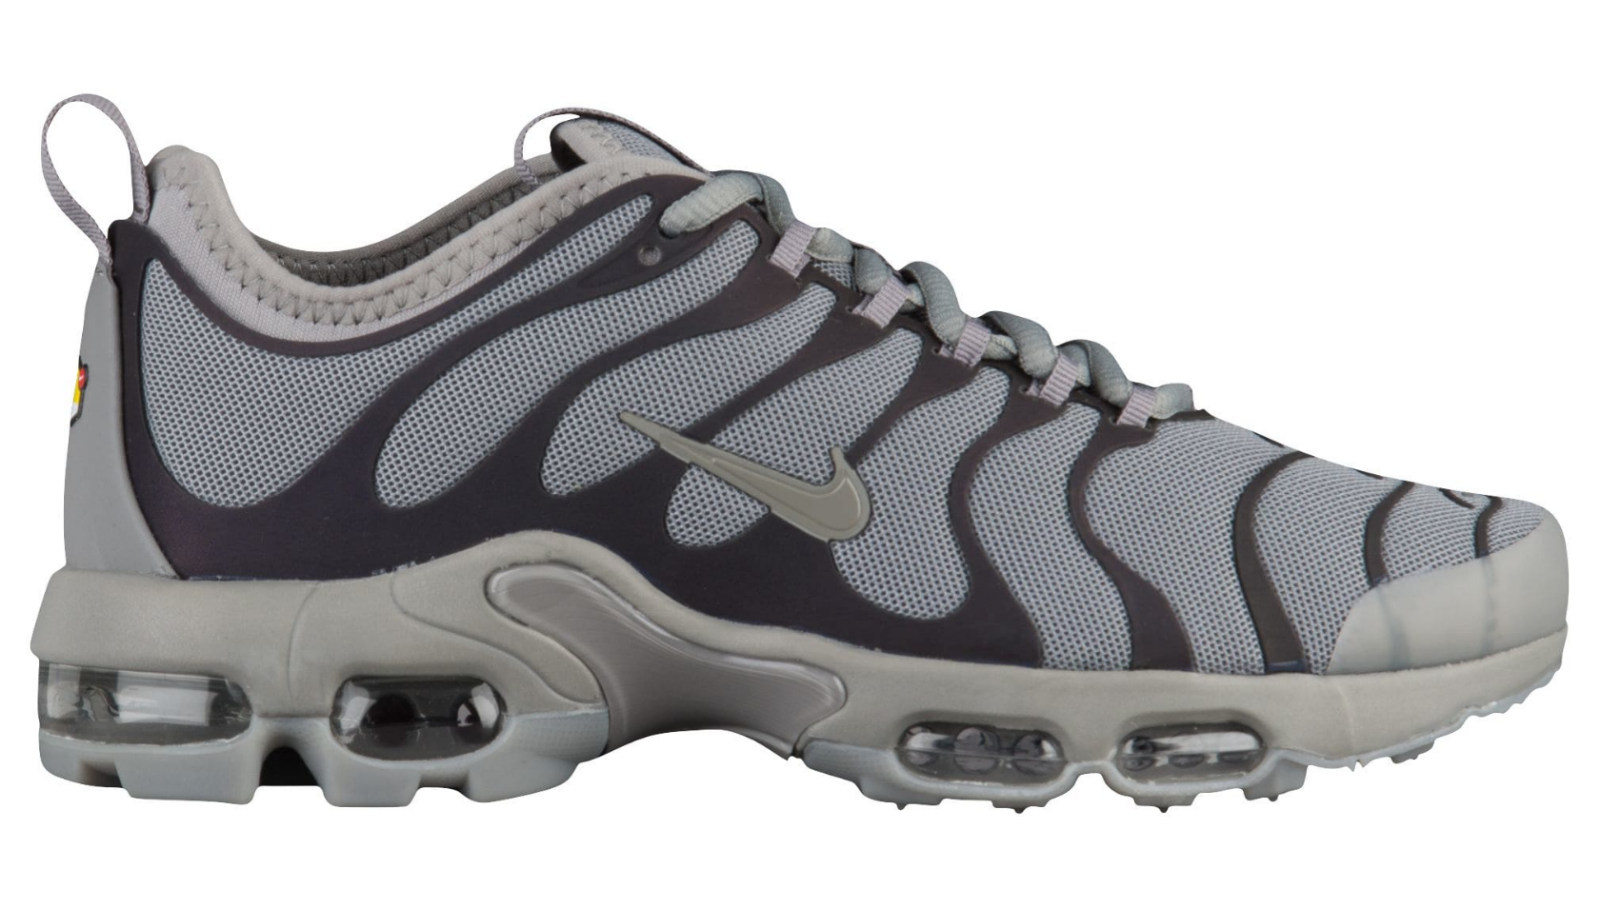 Nike Air Max gris Plus Tuned Tn UK4 / EU37.5 gris Max USA import 9a4f4f